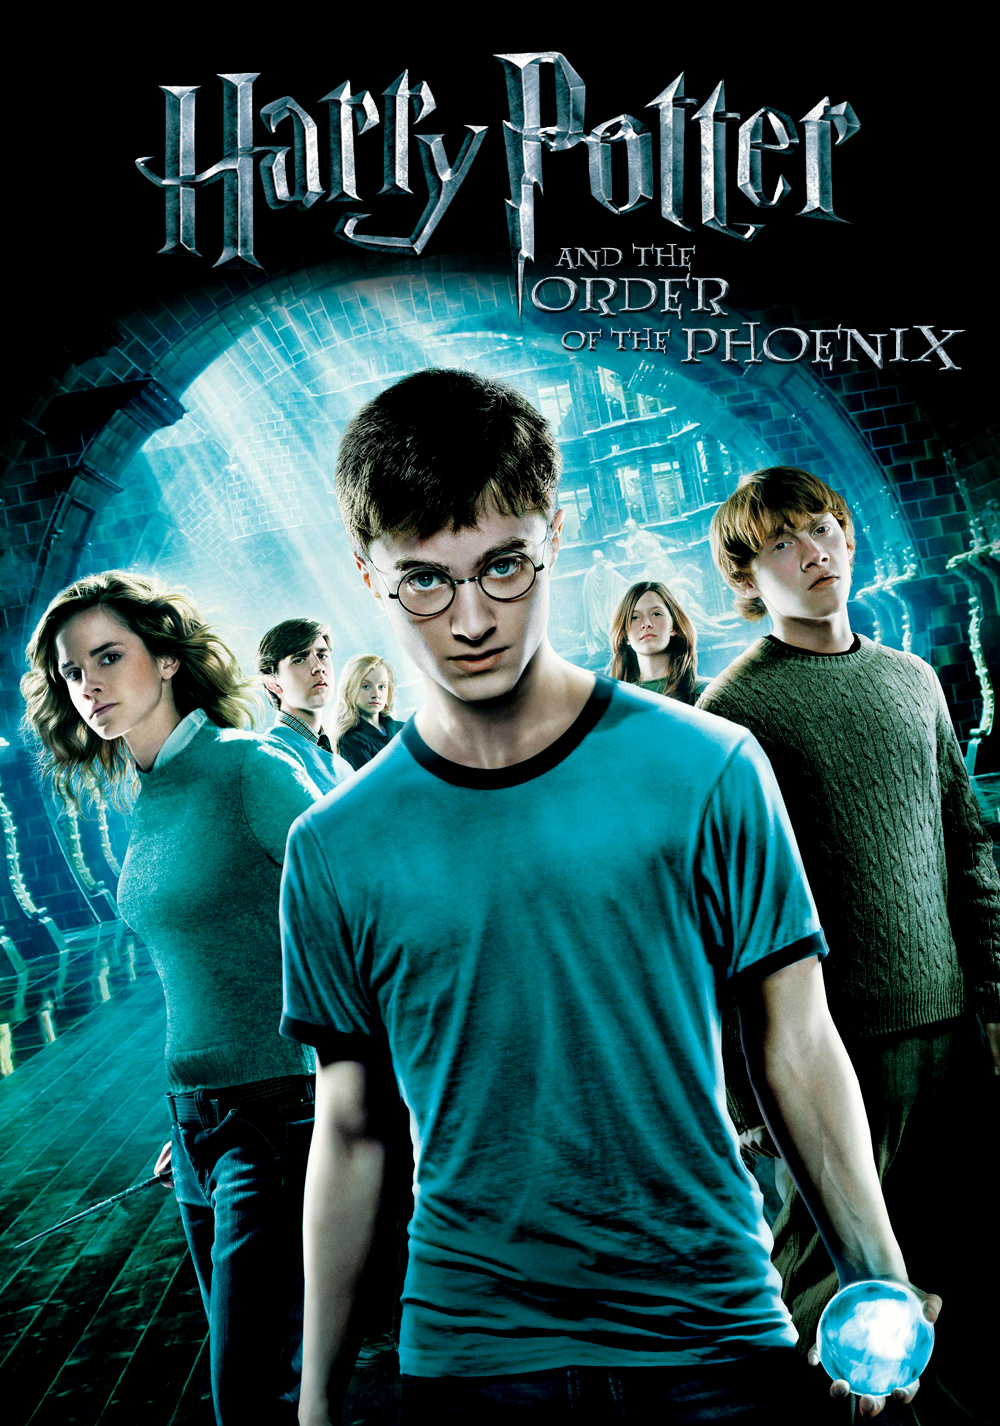 harry-potter-and-the-order-of-the-phoenix-555e48a7e4026.jpg